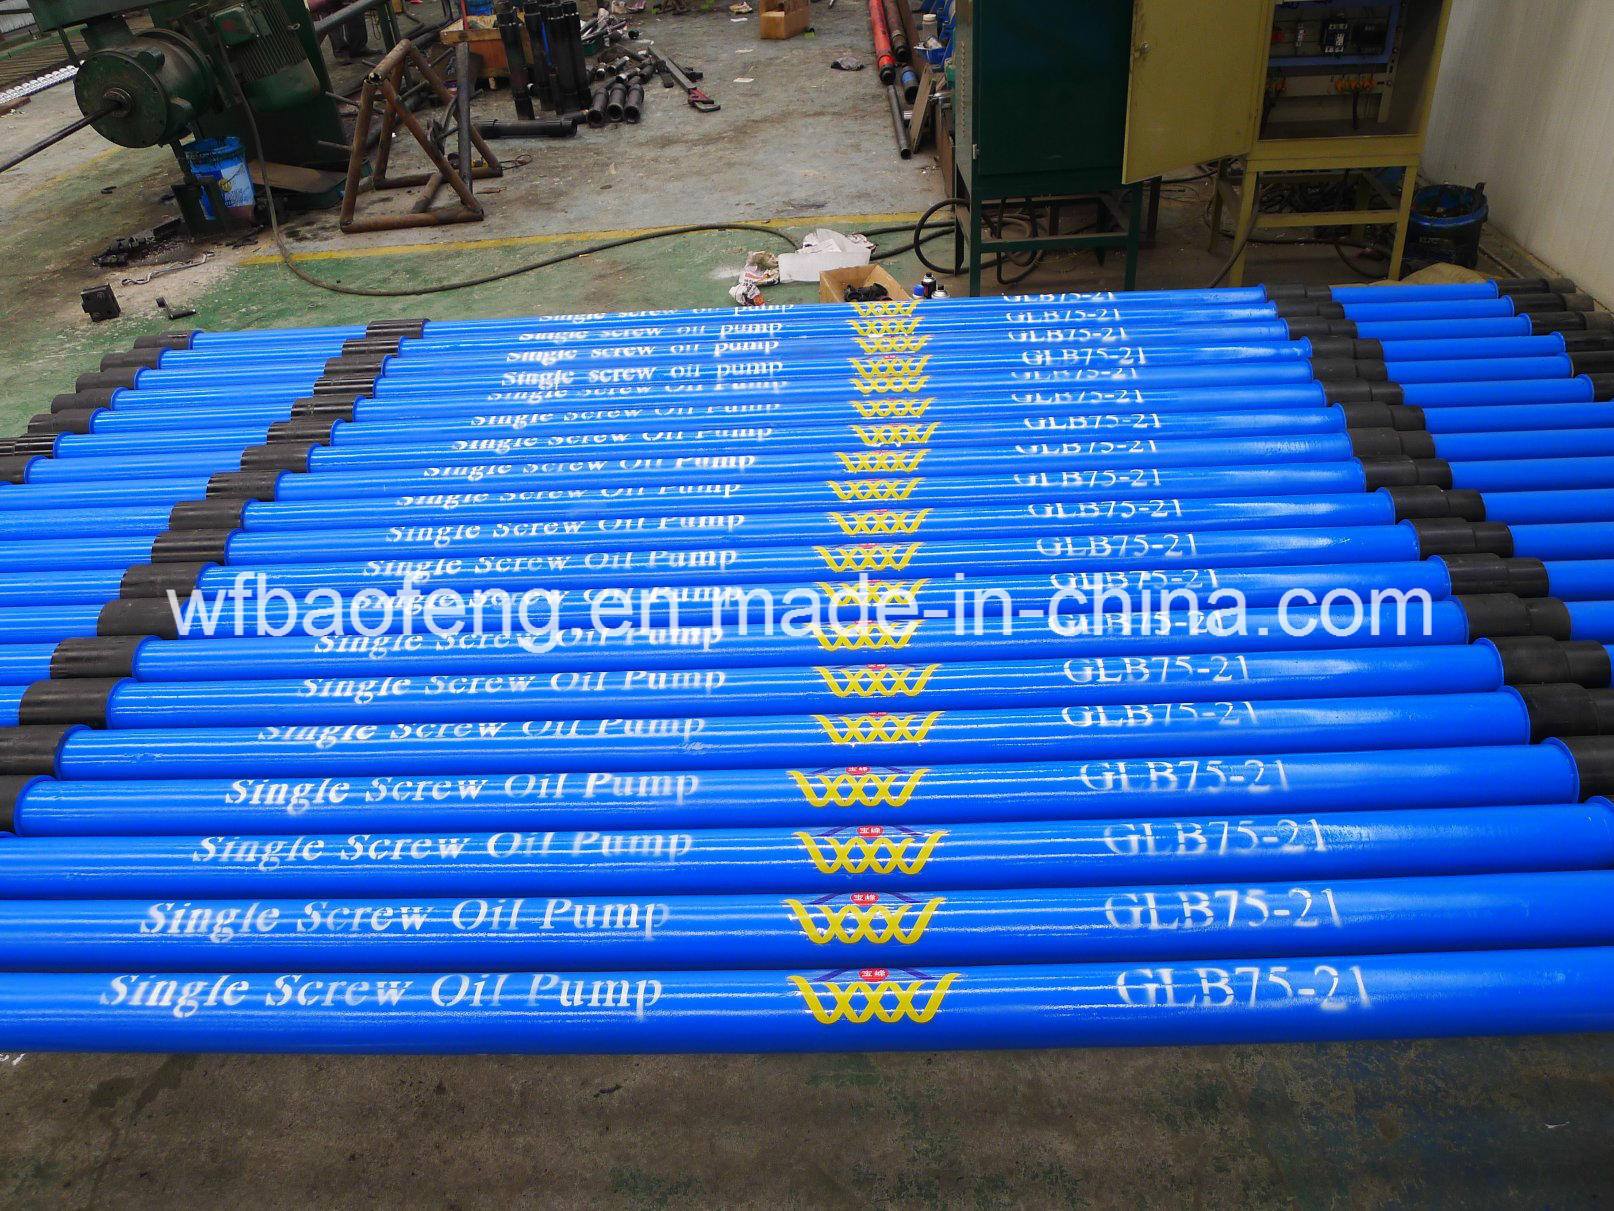 """7""""Casing Screw Pump Well Pump Rotor and Stator Glb120/36"""